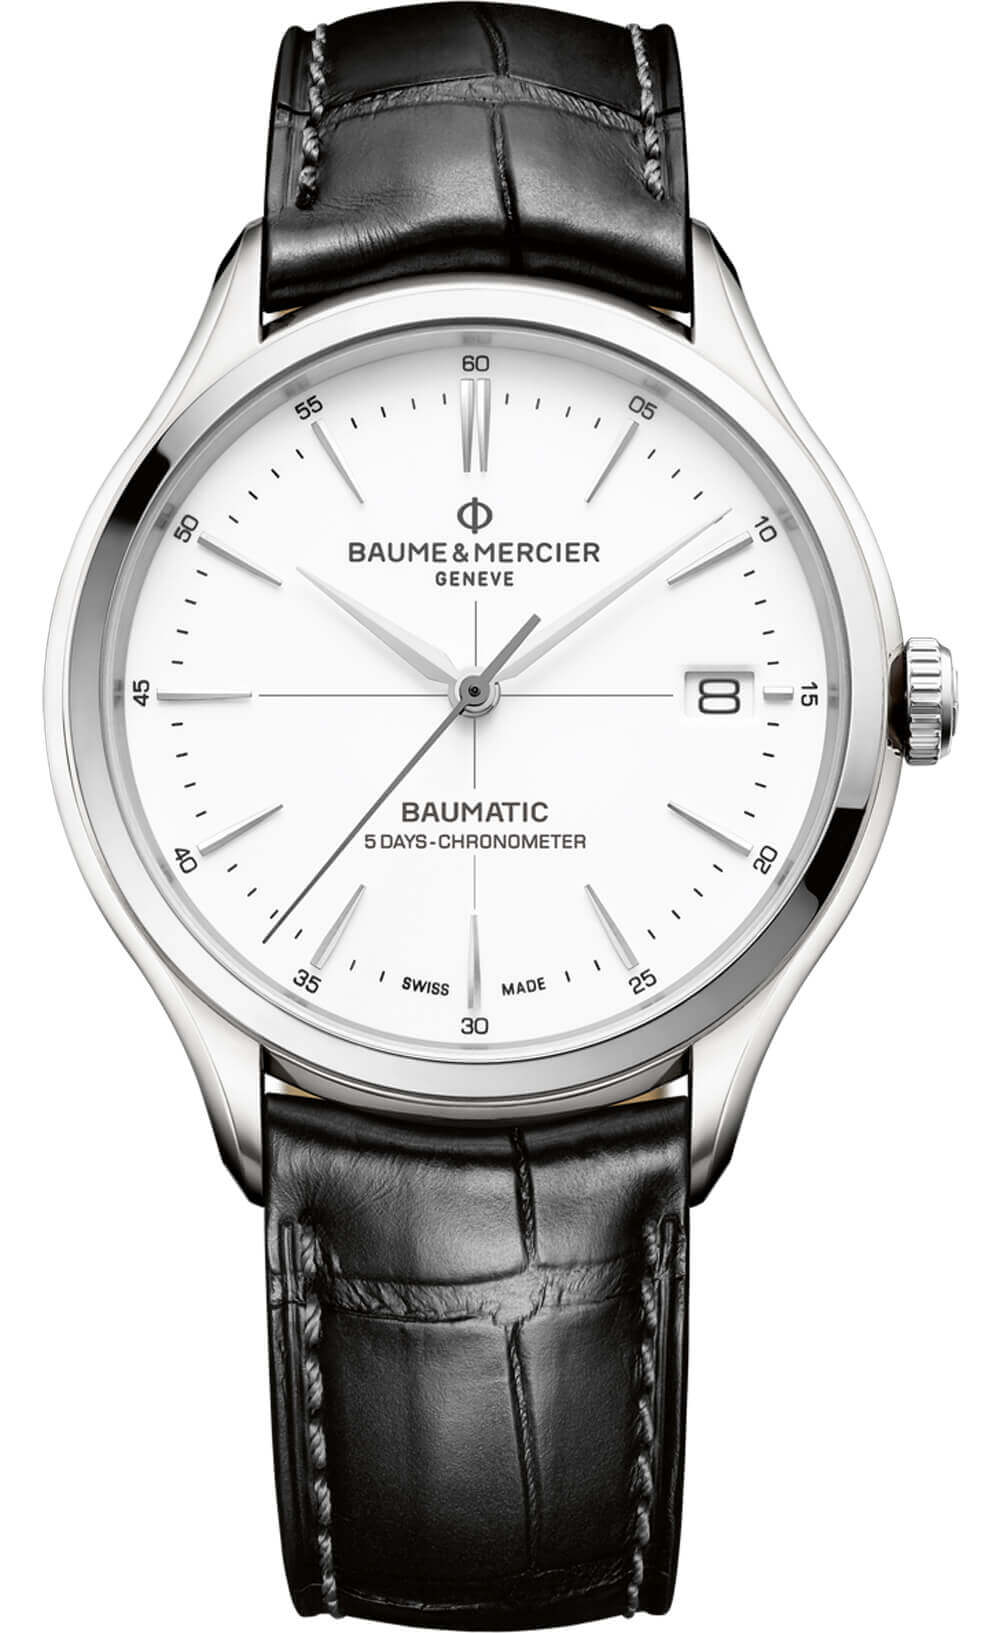 Baume & Mercier Baumatic - certified chronometer (COSC) with silicon hairspring